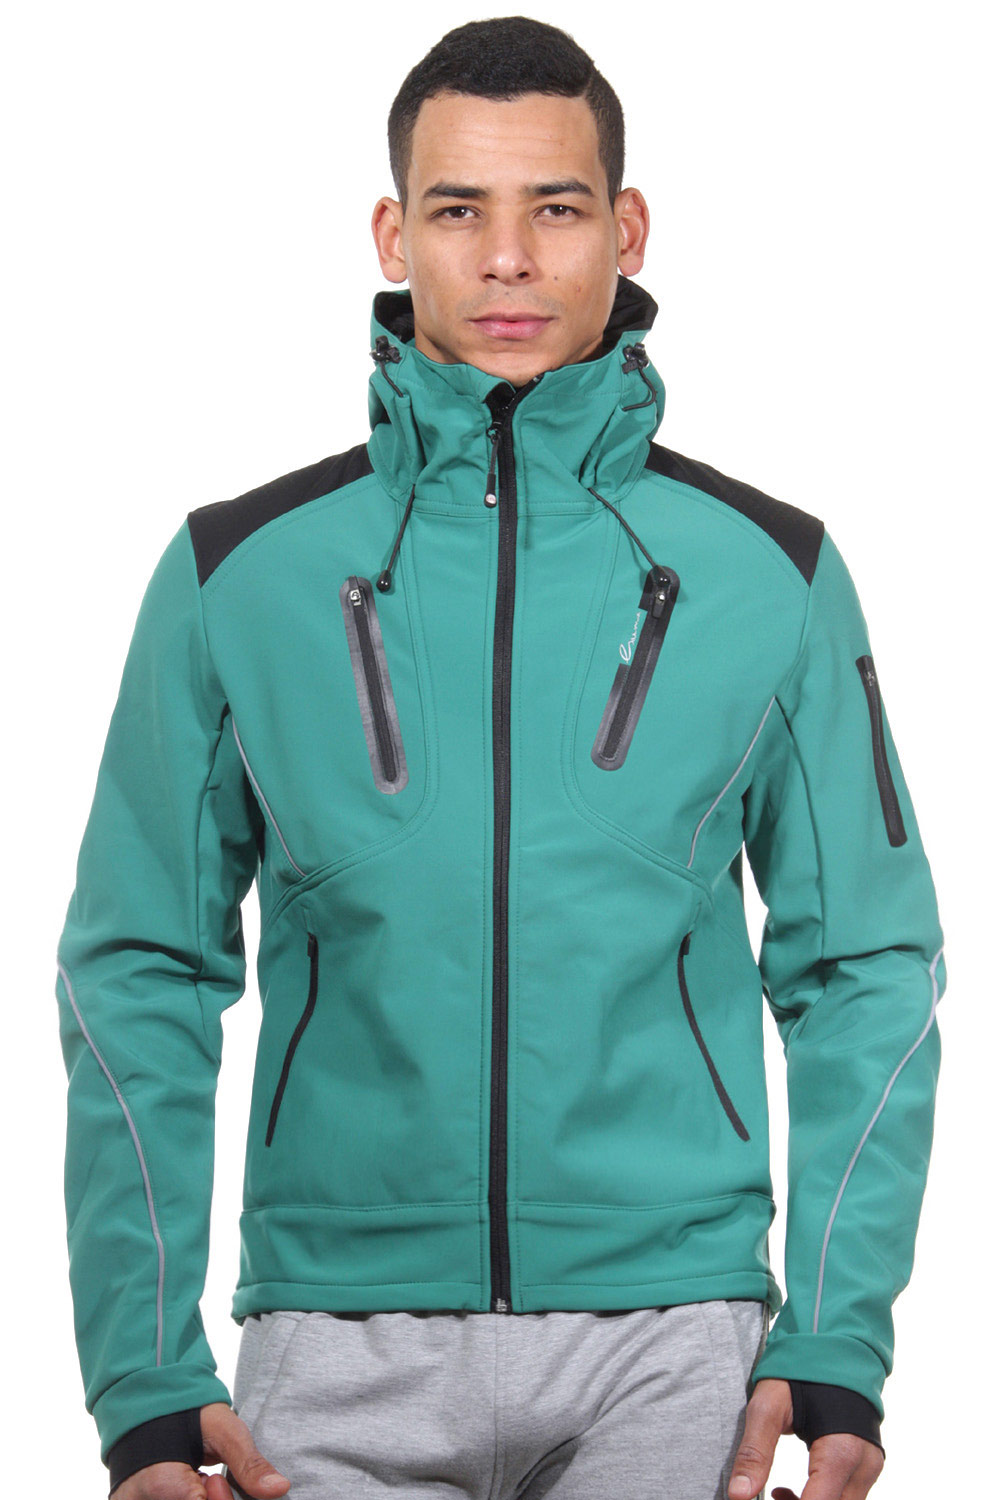 EXUMA ACTIVE hoodie softshell jacket slim fit at oboy.com